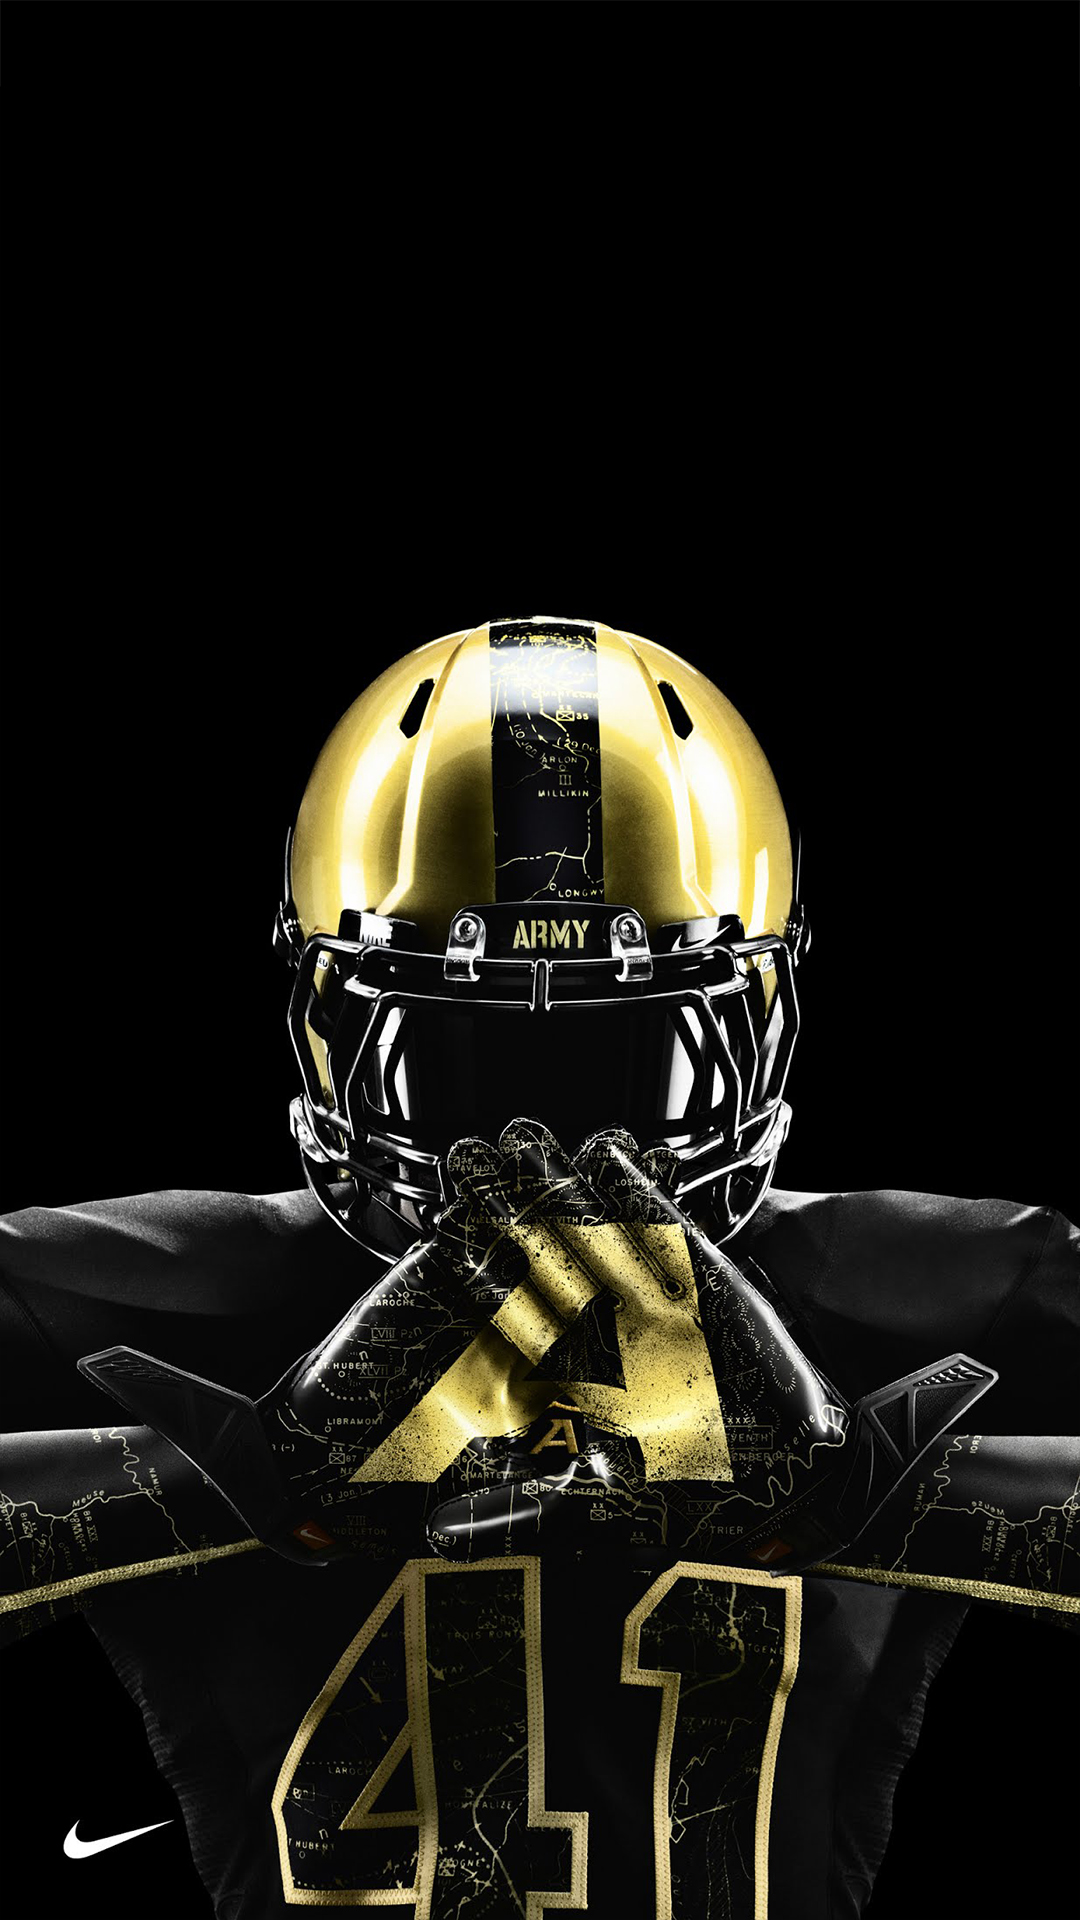 Wallpaper Adidas 3d Army Nike Gloves Best Htc One Wallpapers Free And Easy